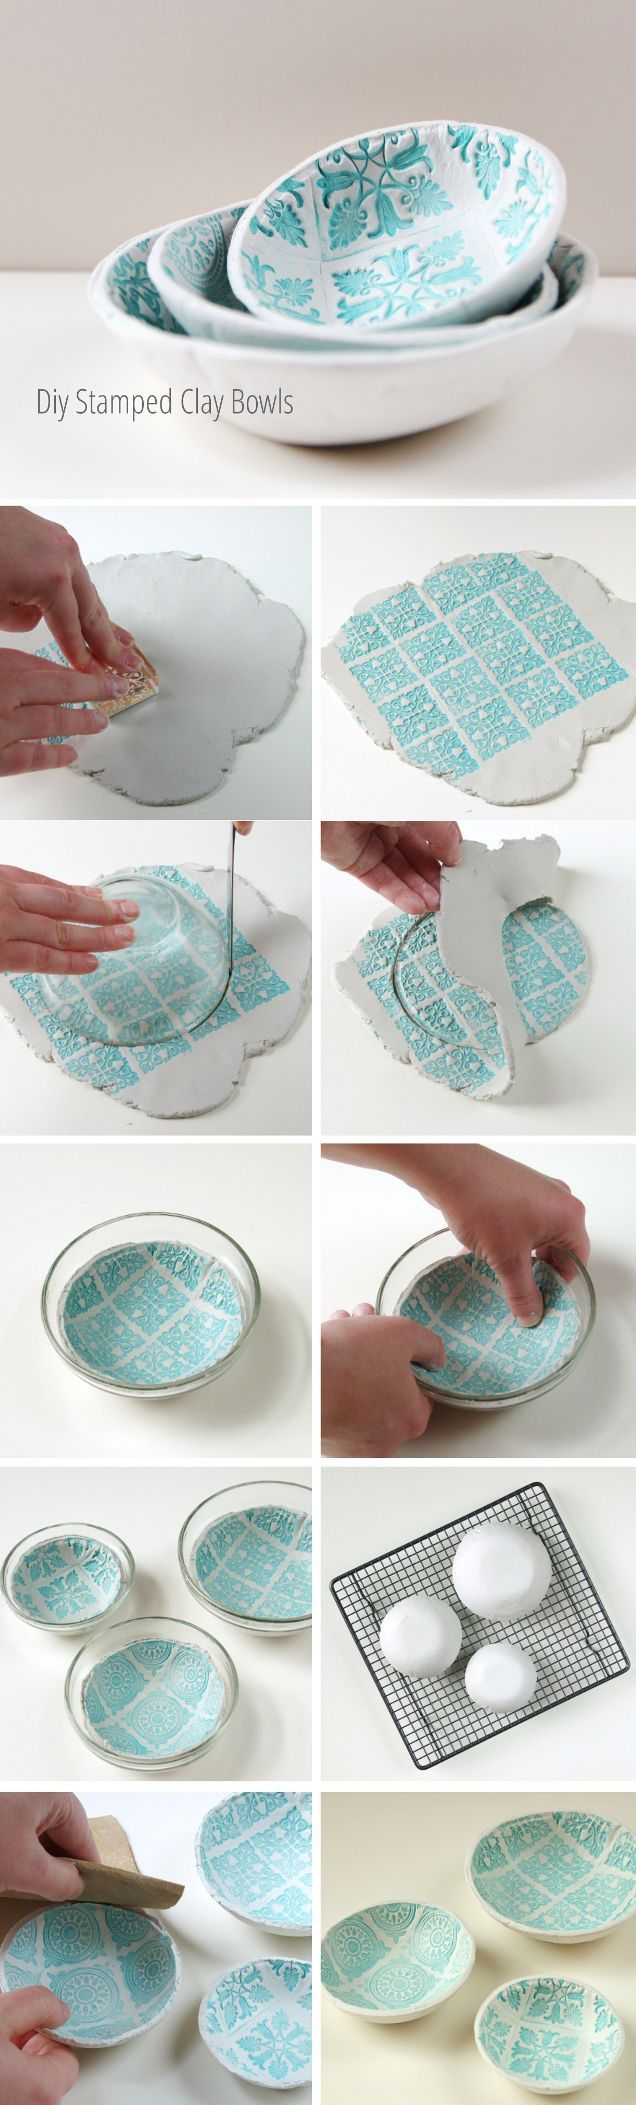 Diy Stamped Clay Bowls.                                                                                                                                                                                 More